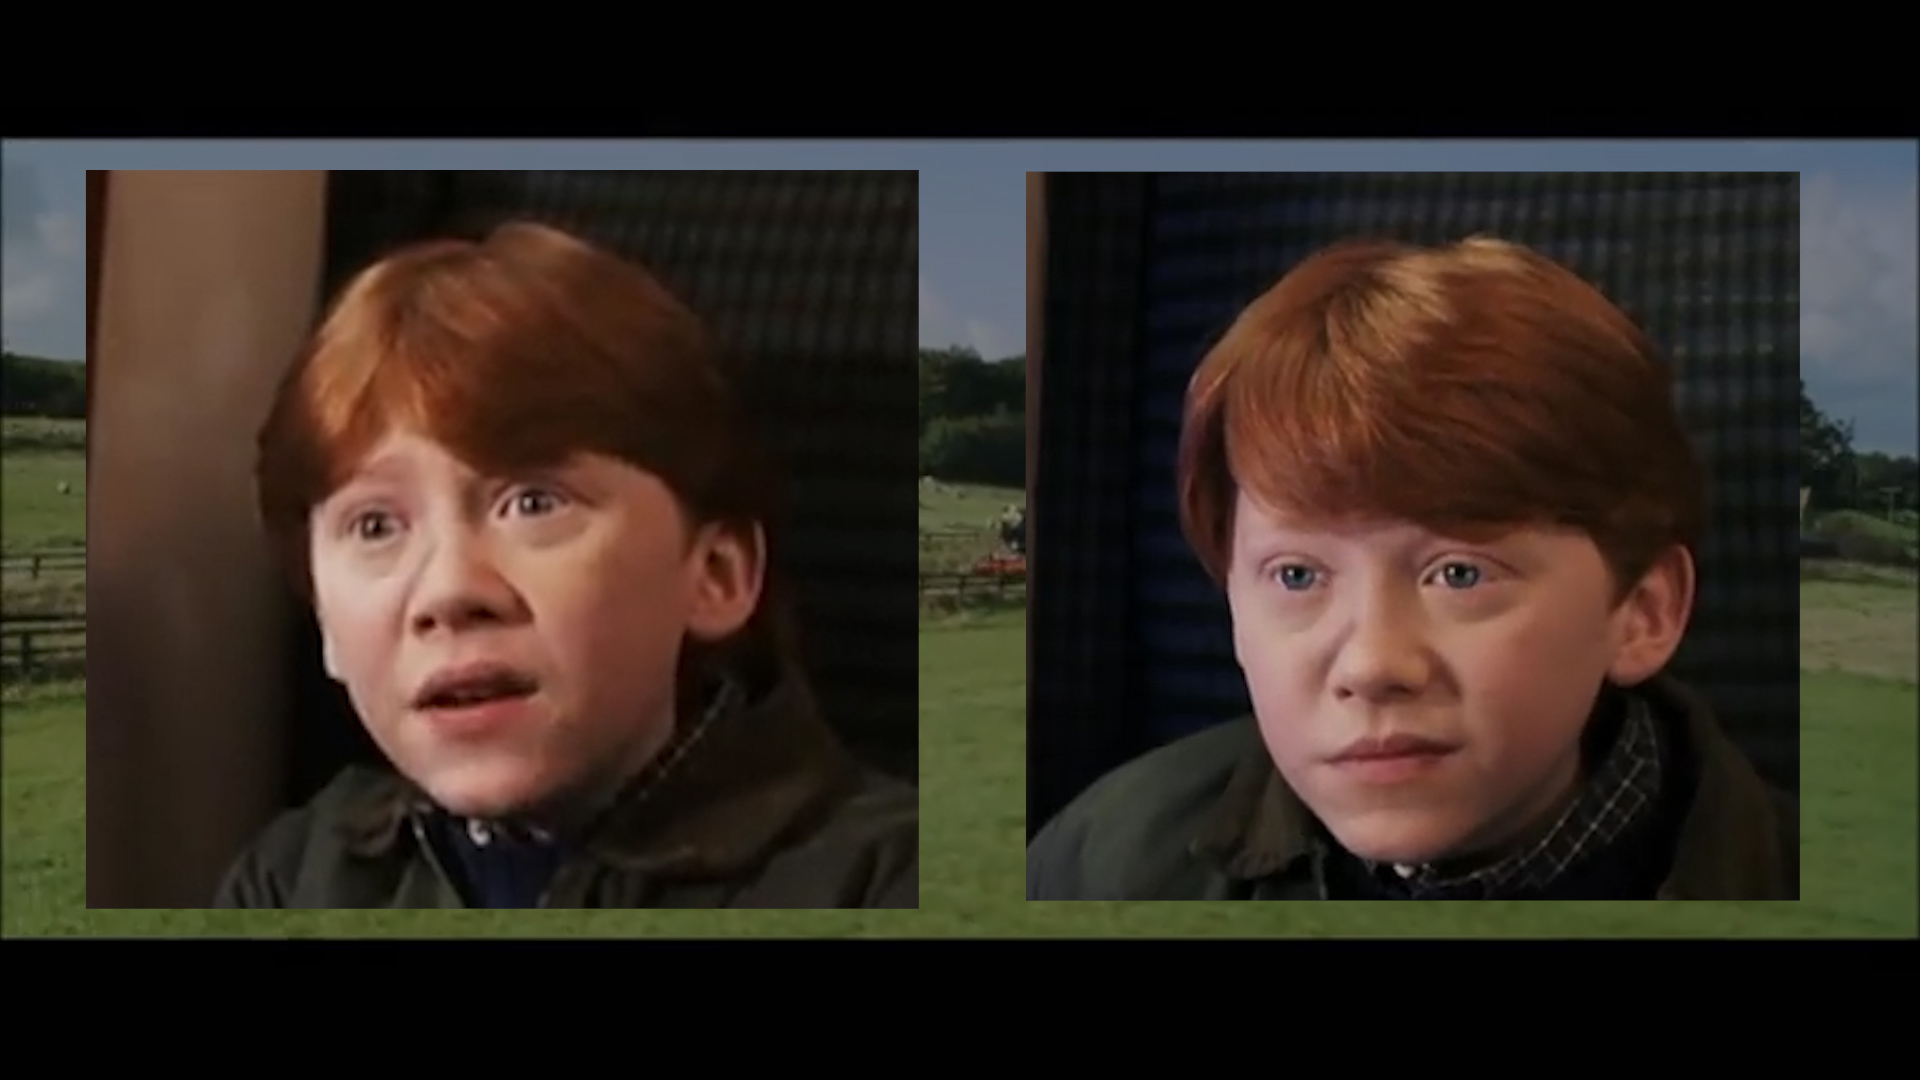 Harry Potter Cameraman : Major mistakes in the harry potter movies top indi news